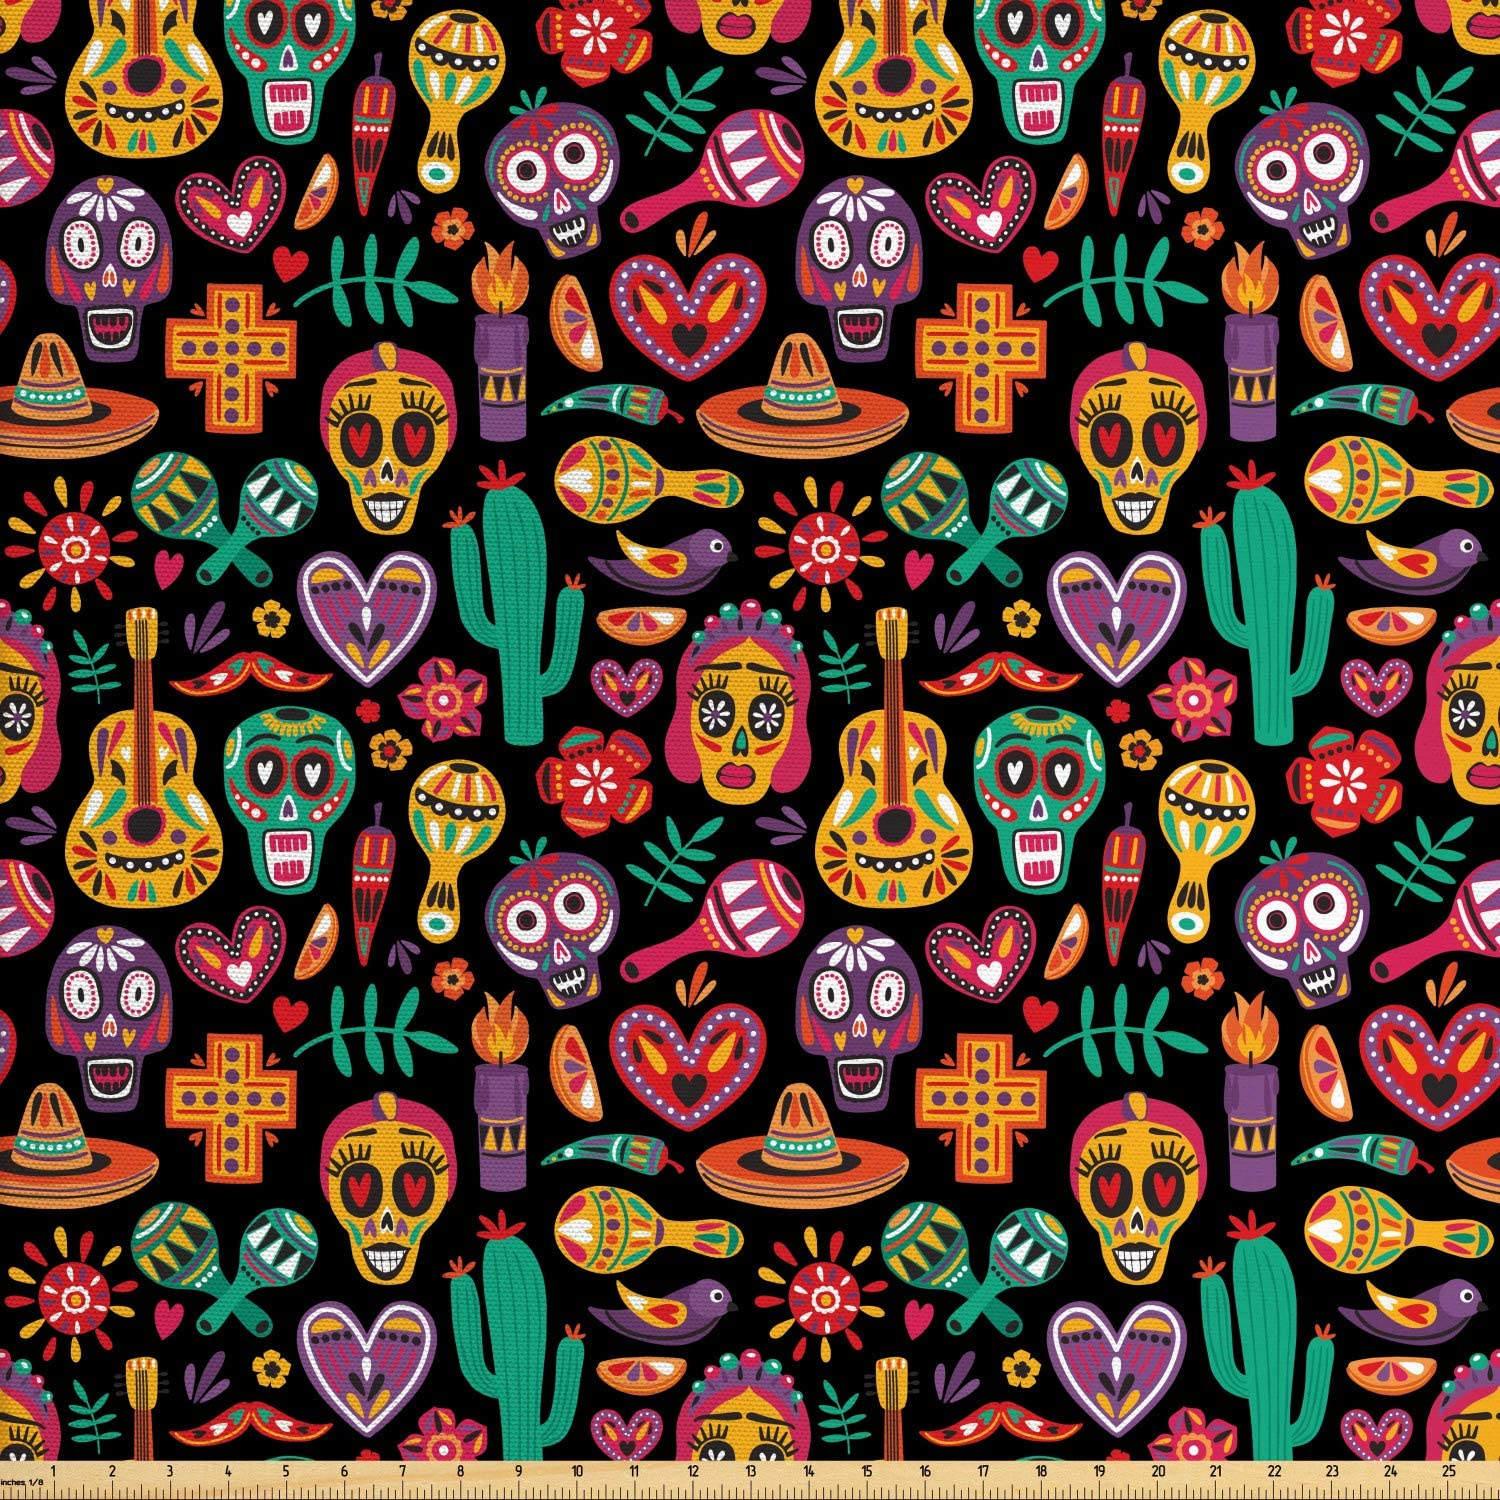 Ambesonne Day of The Dead Fabric by The Yard, Continuous Sugar Skull Flowers Pepper and Maracas Pattern, Decorative Fabric for Upholstery and Home Accents, 5 Yards, Charcoal Grey